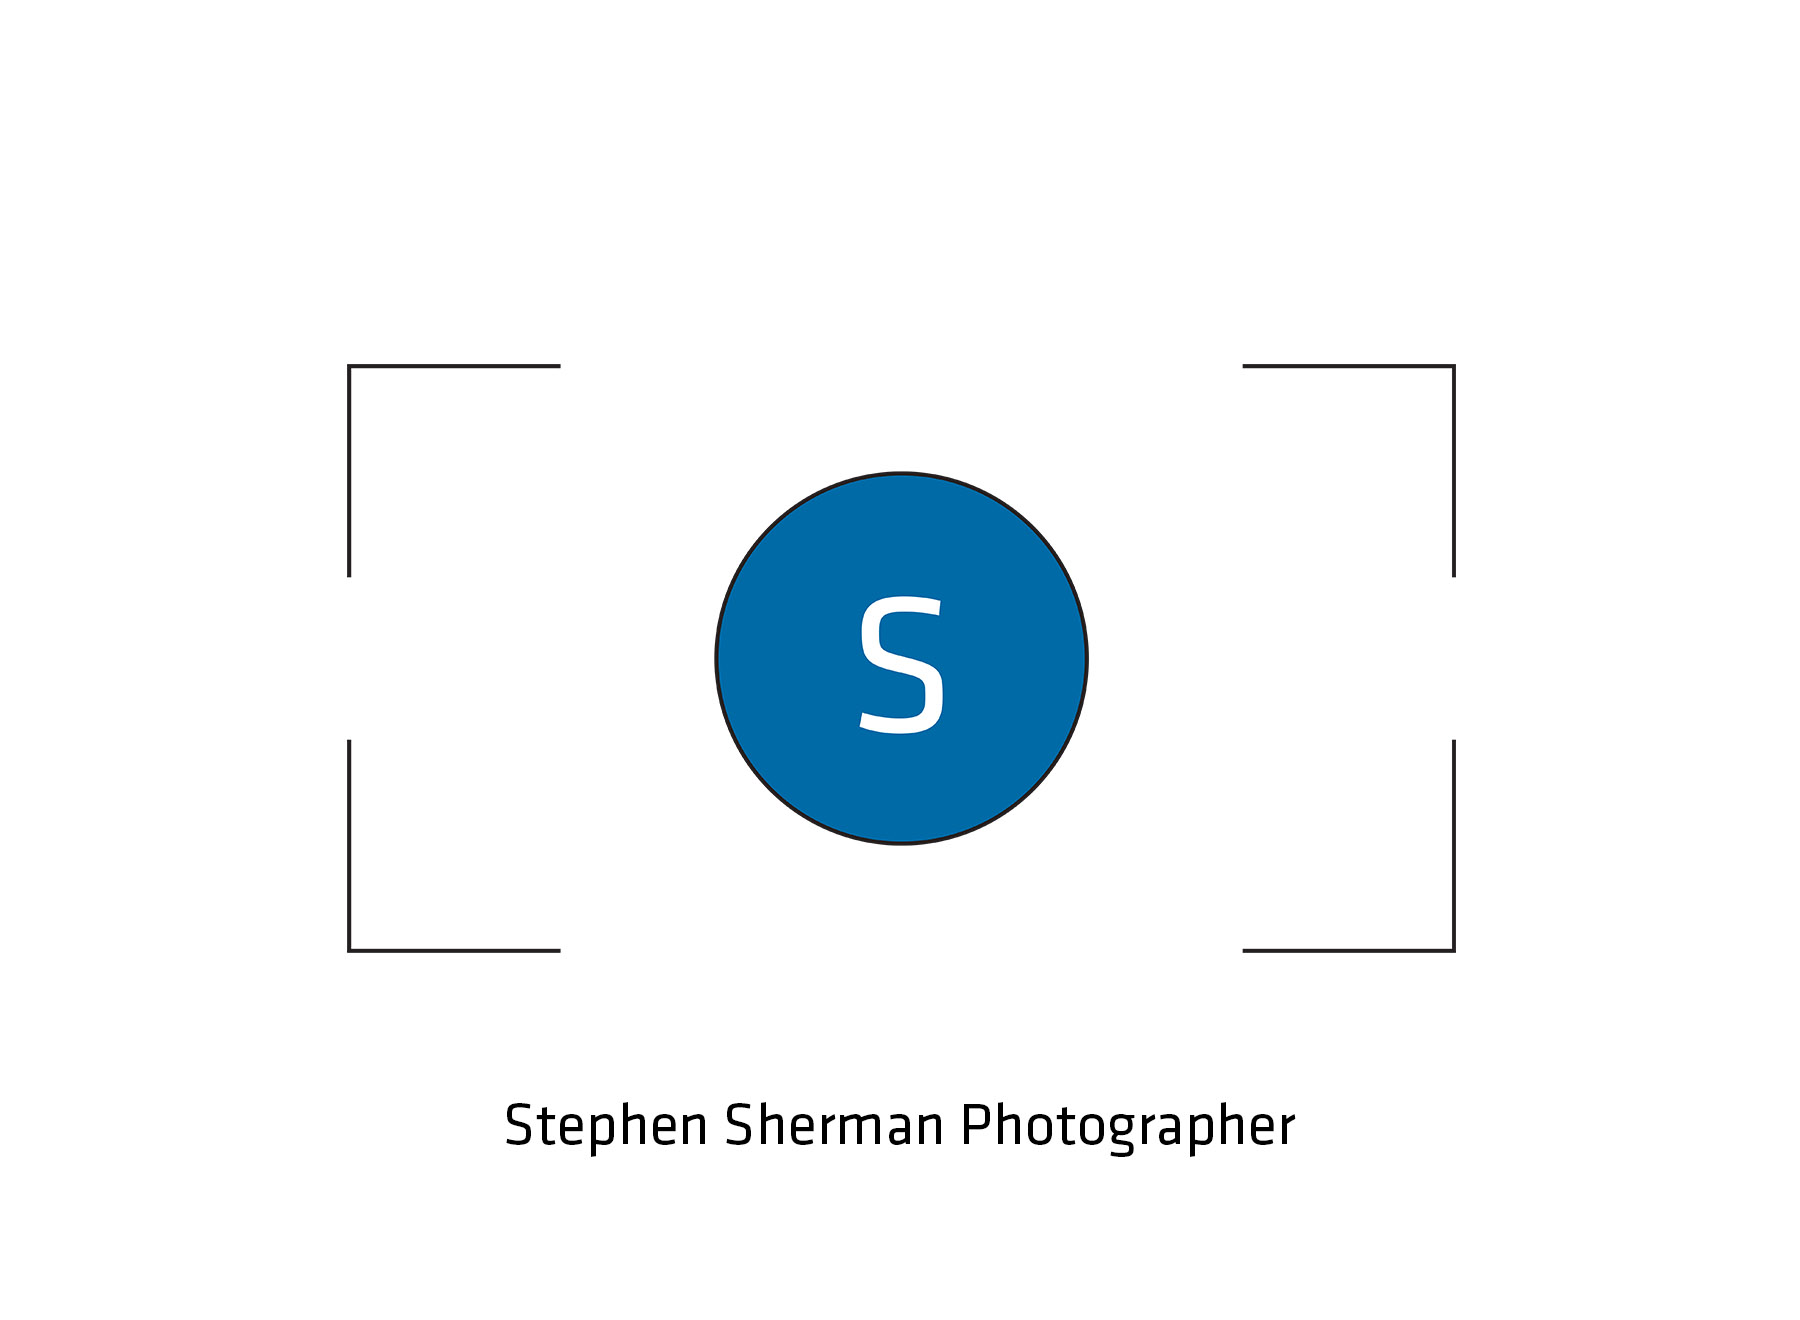 Stephen Sherman Photography Portfolio